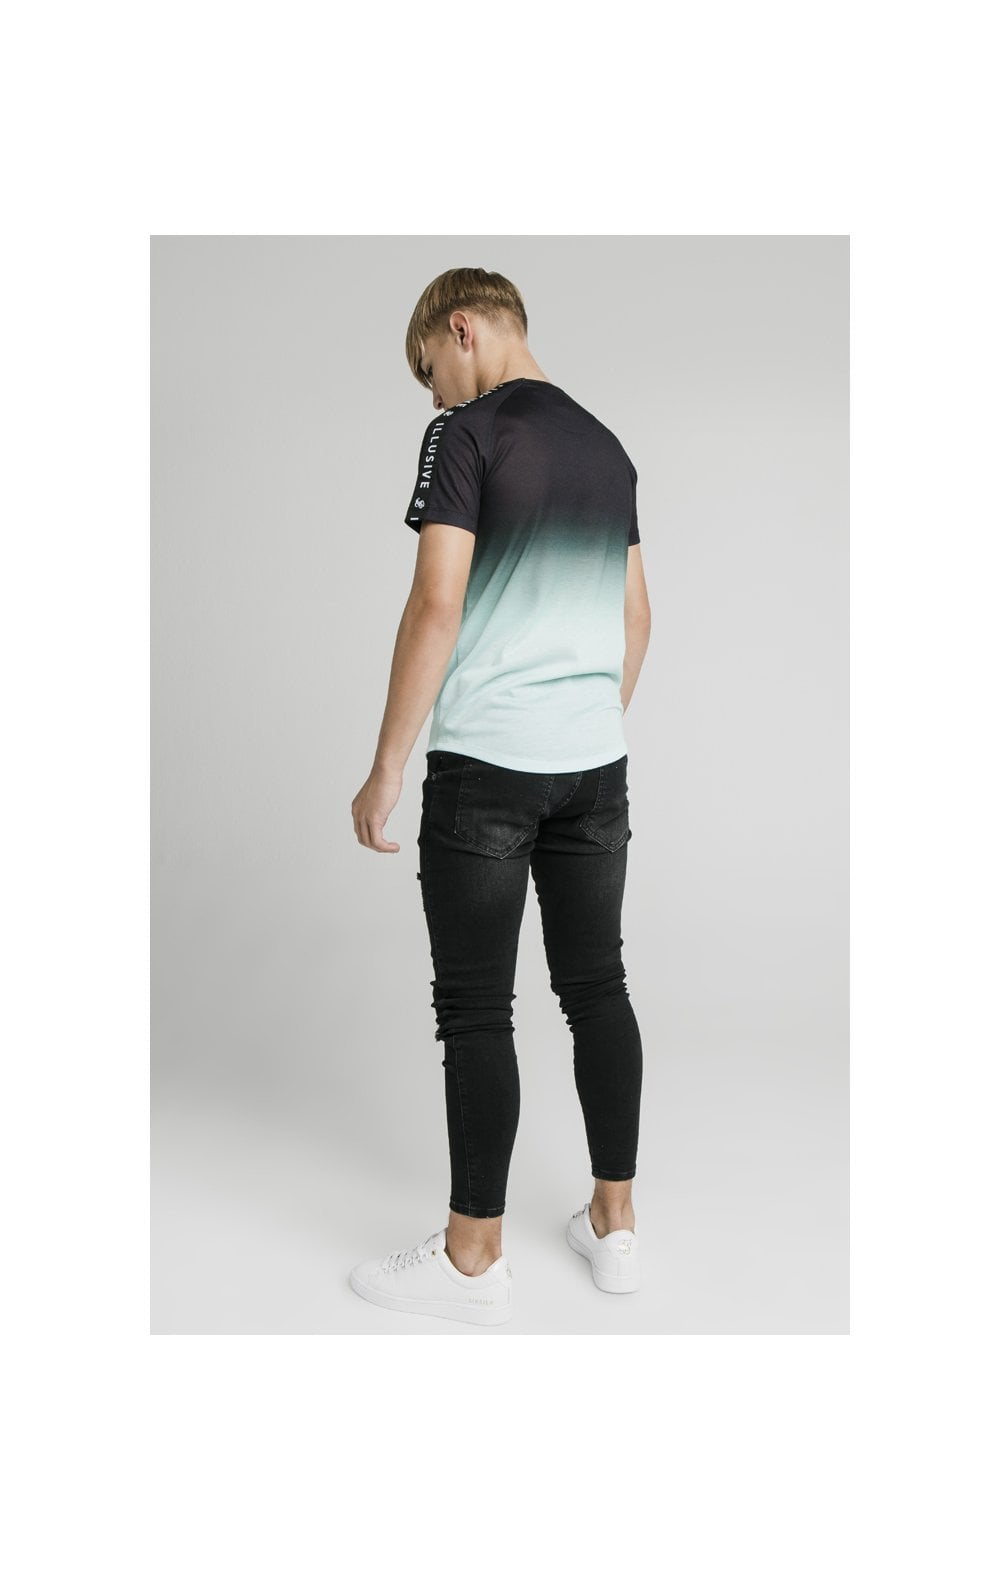 Illusive London Tape Fade Logo Tee - Black & Mint (6)